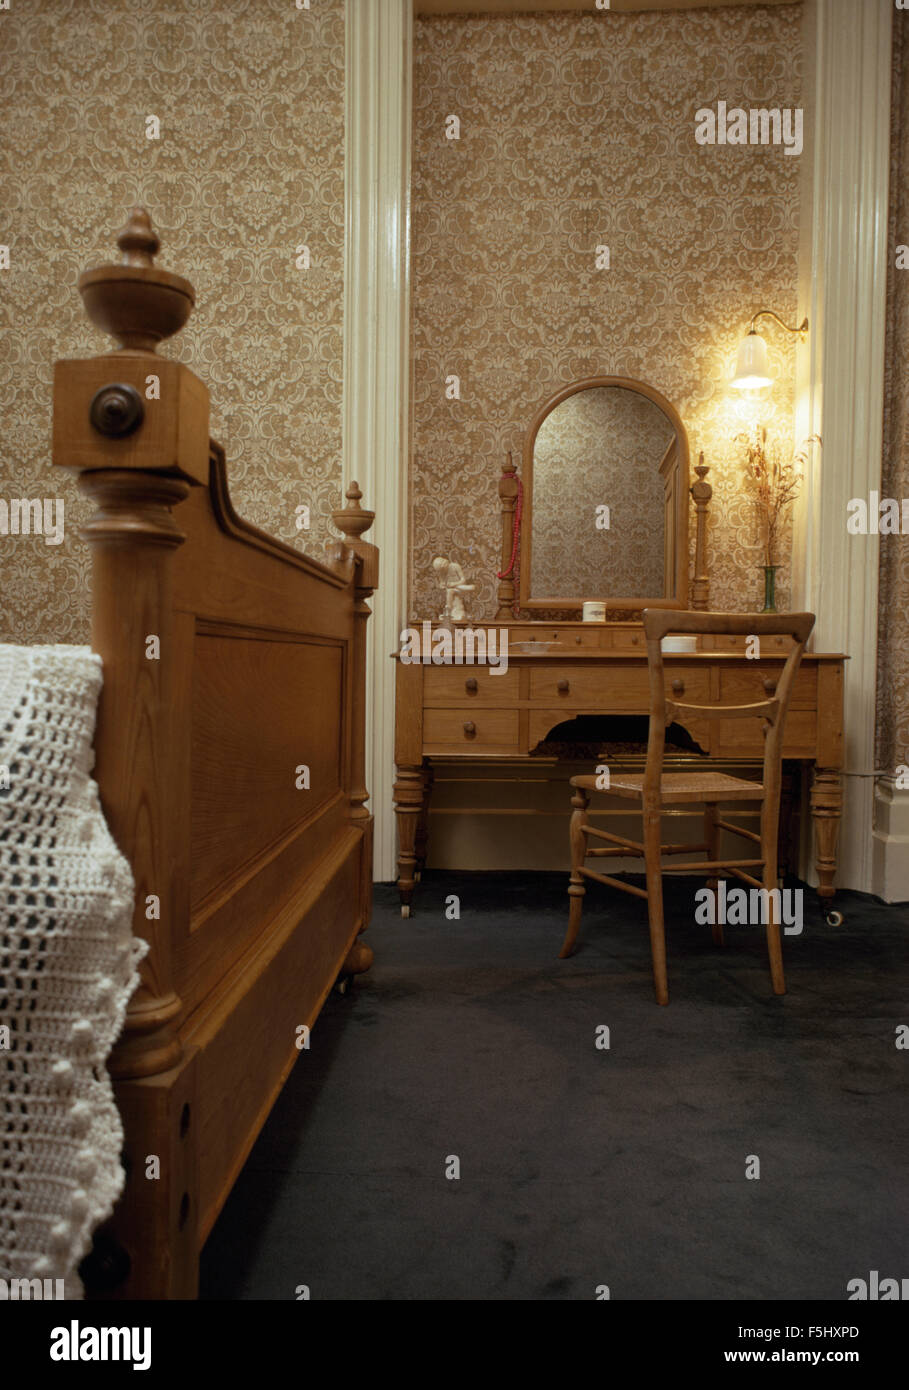 Old Fashioned Bedroom Muted Wallpaper And Old Fashioned Dressing Table In Seventies